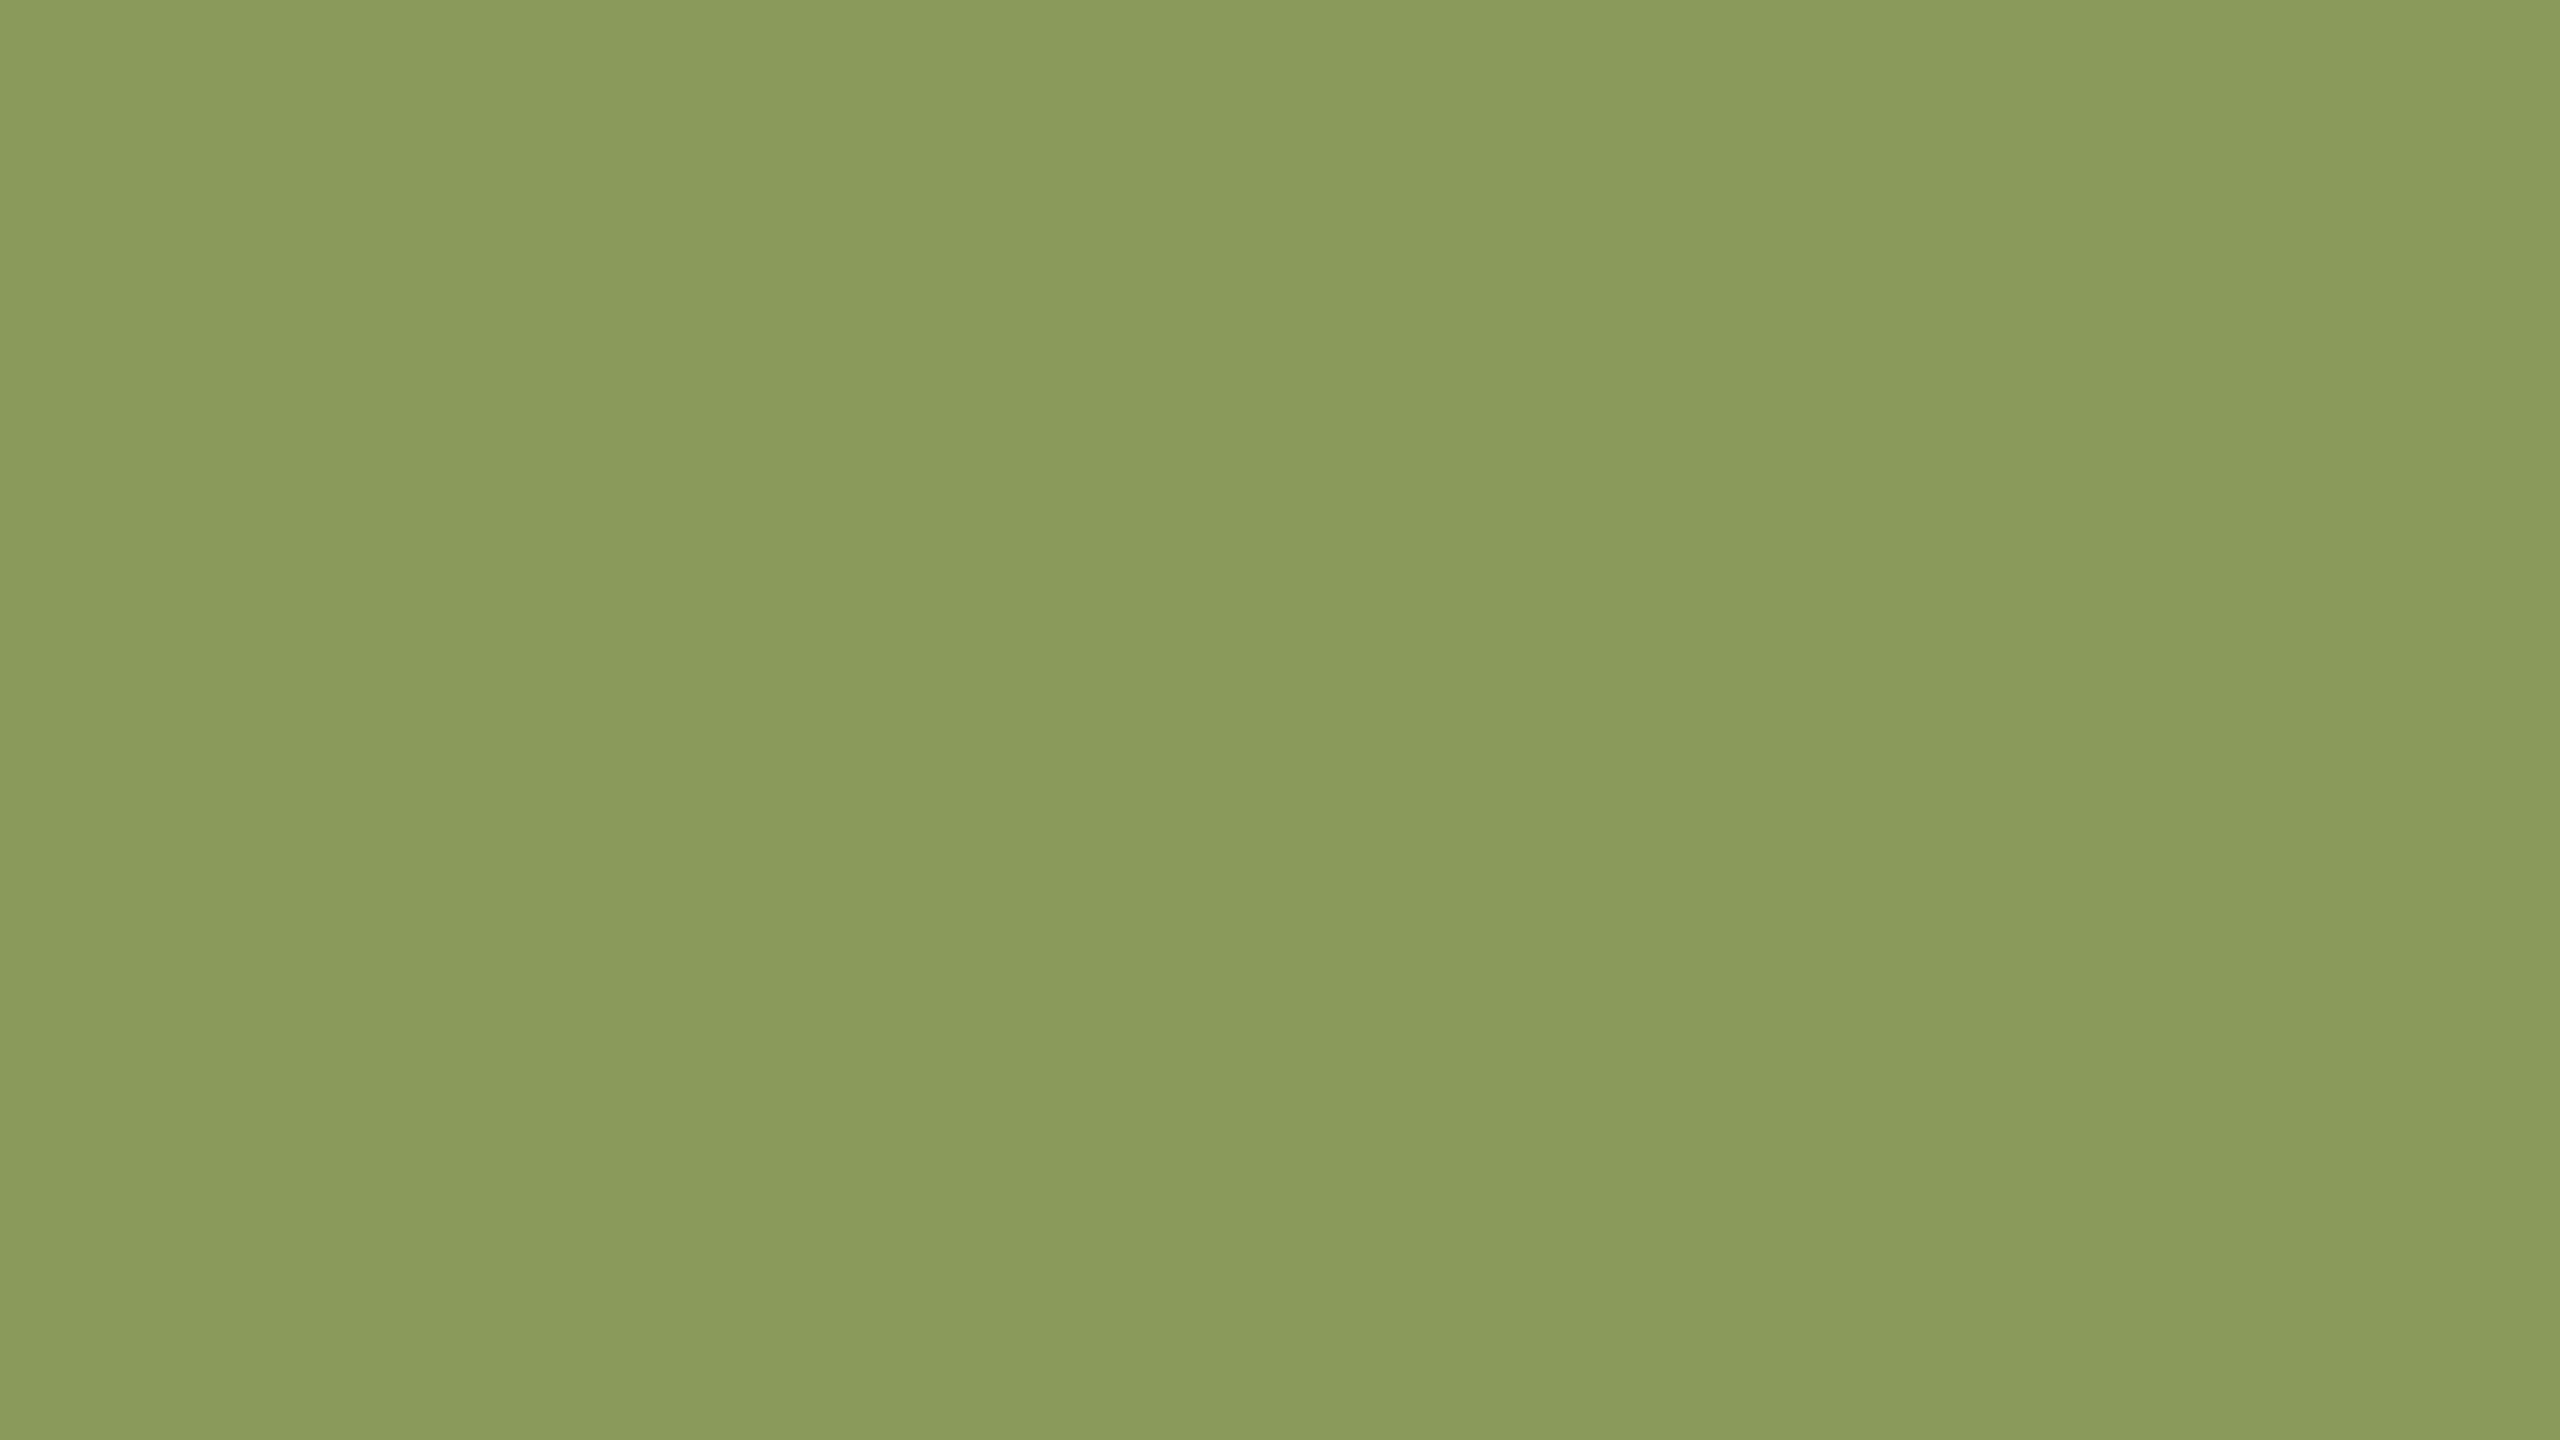 2560x1440 Moss Green Solid Color Background